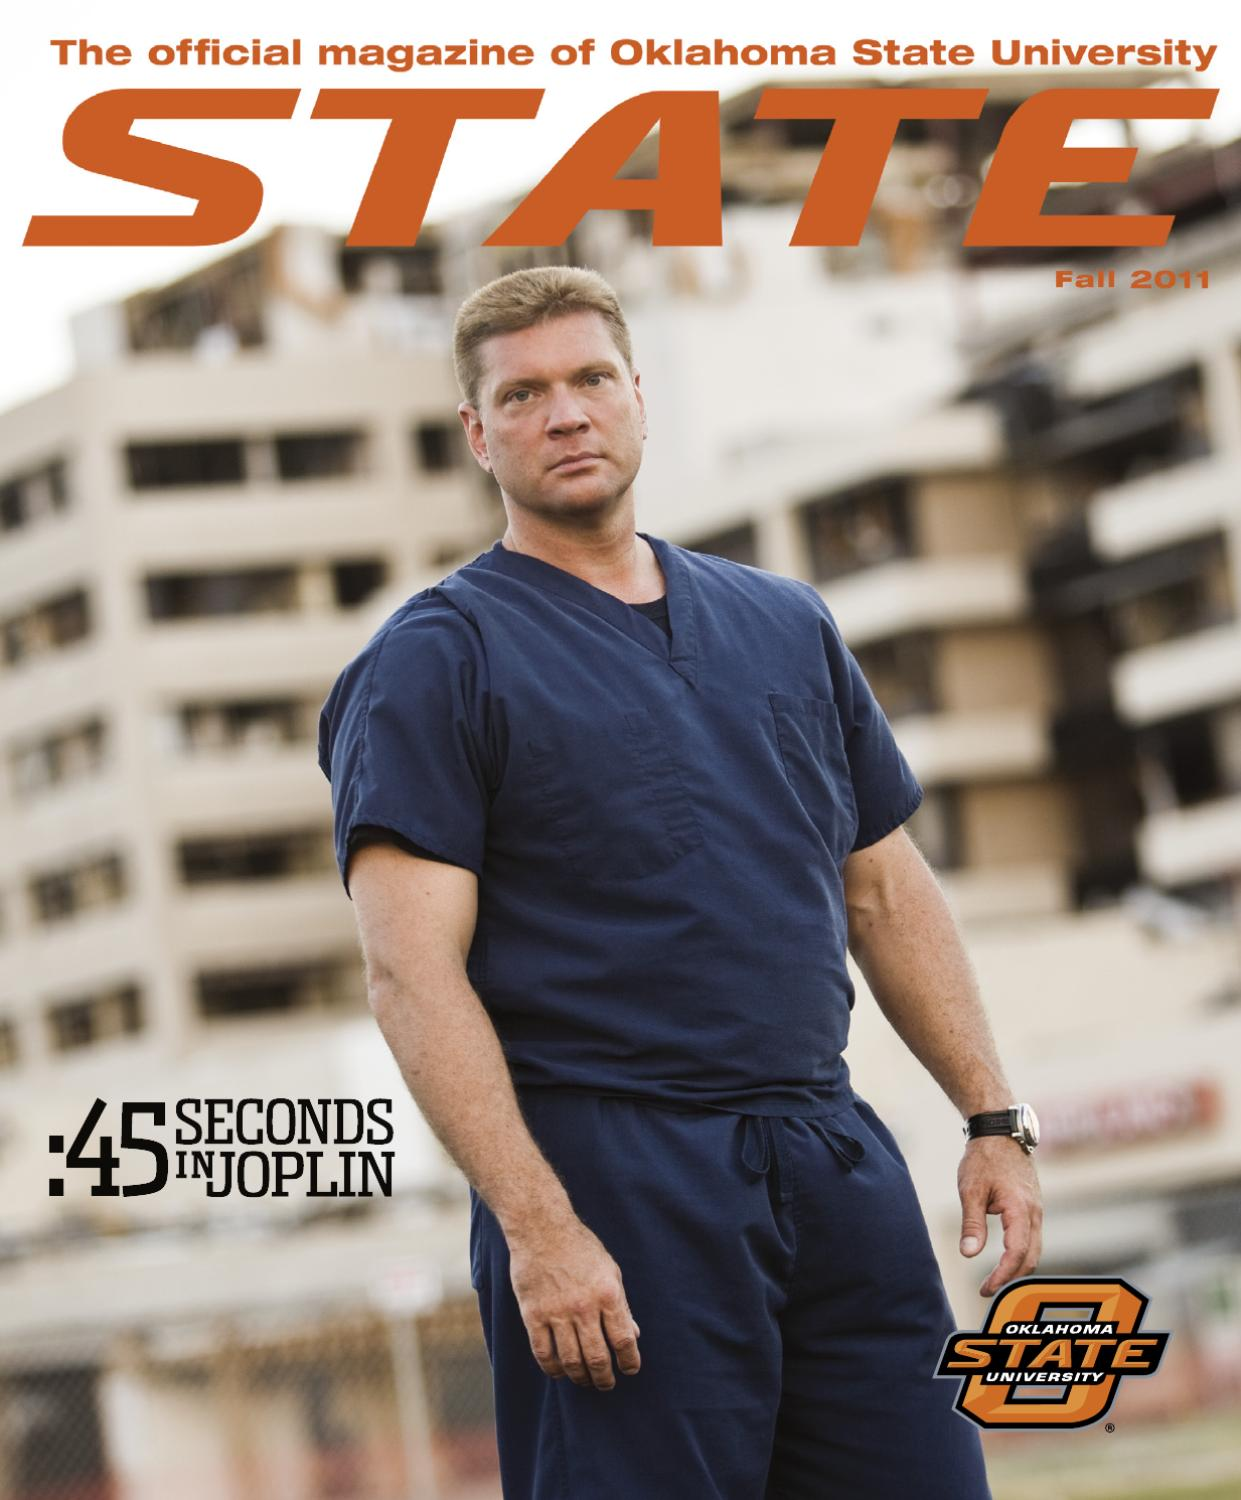 f7399d59 STATE Magazine, Fall 2011 by Oklahoma State - issuu